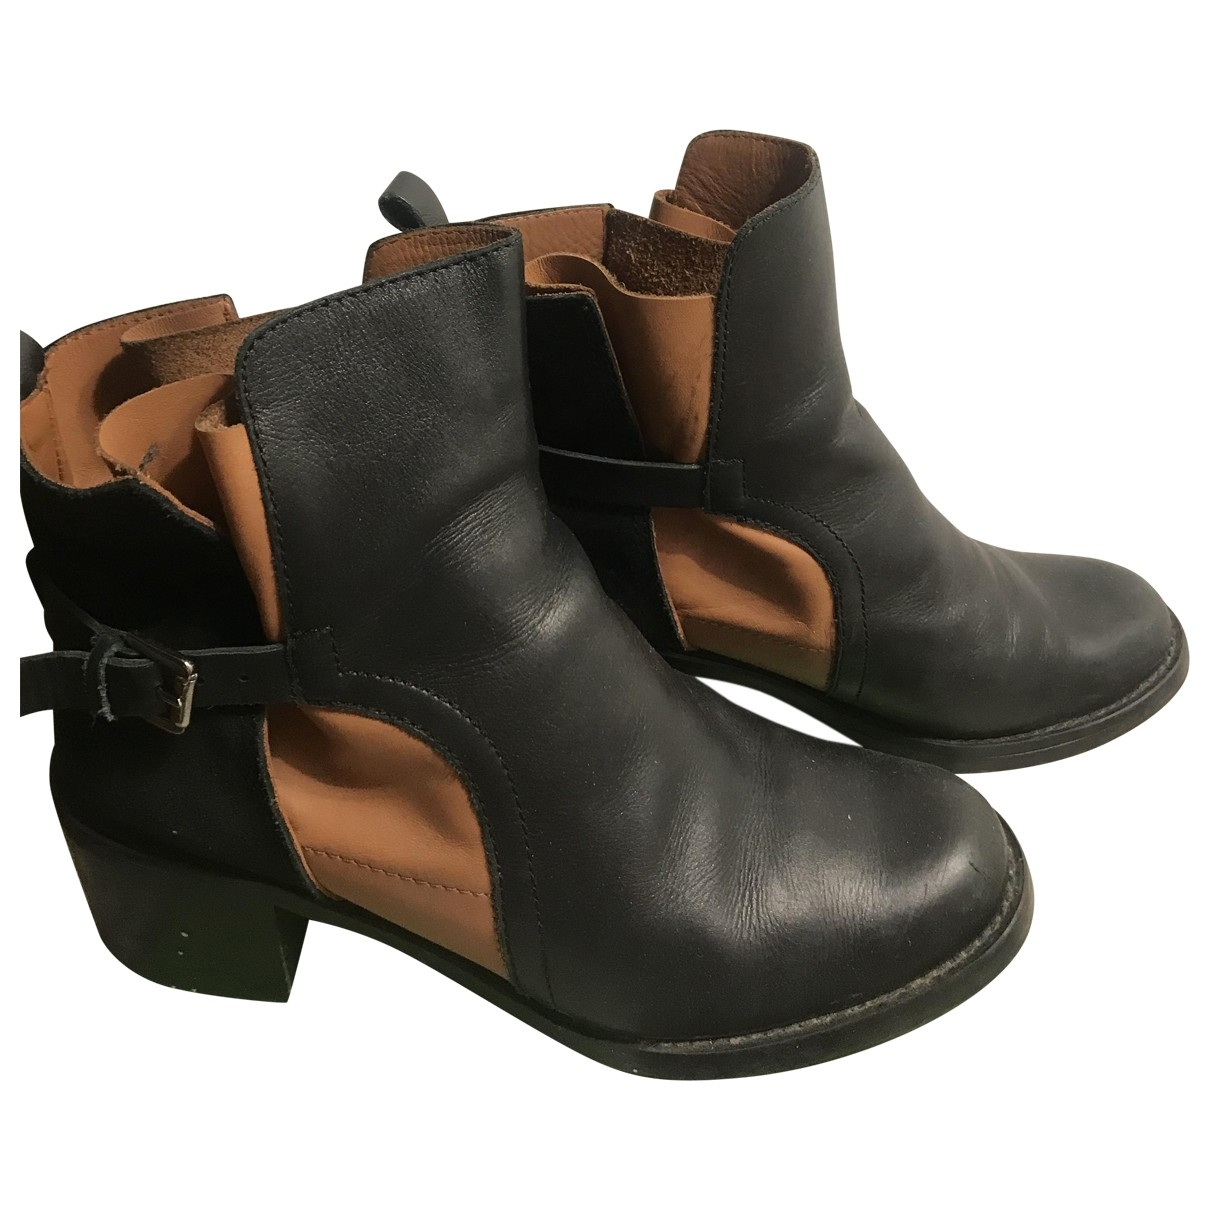 Hoss Intropia \N Black Leather Boots for Women 41 EU